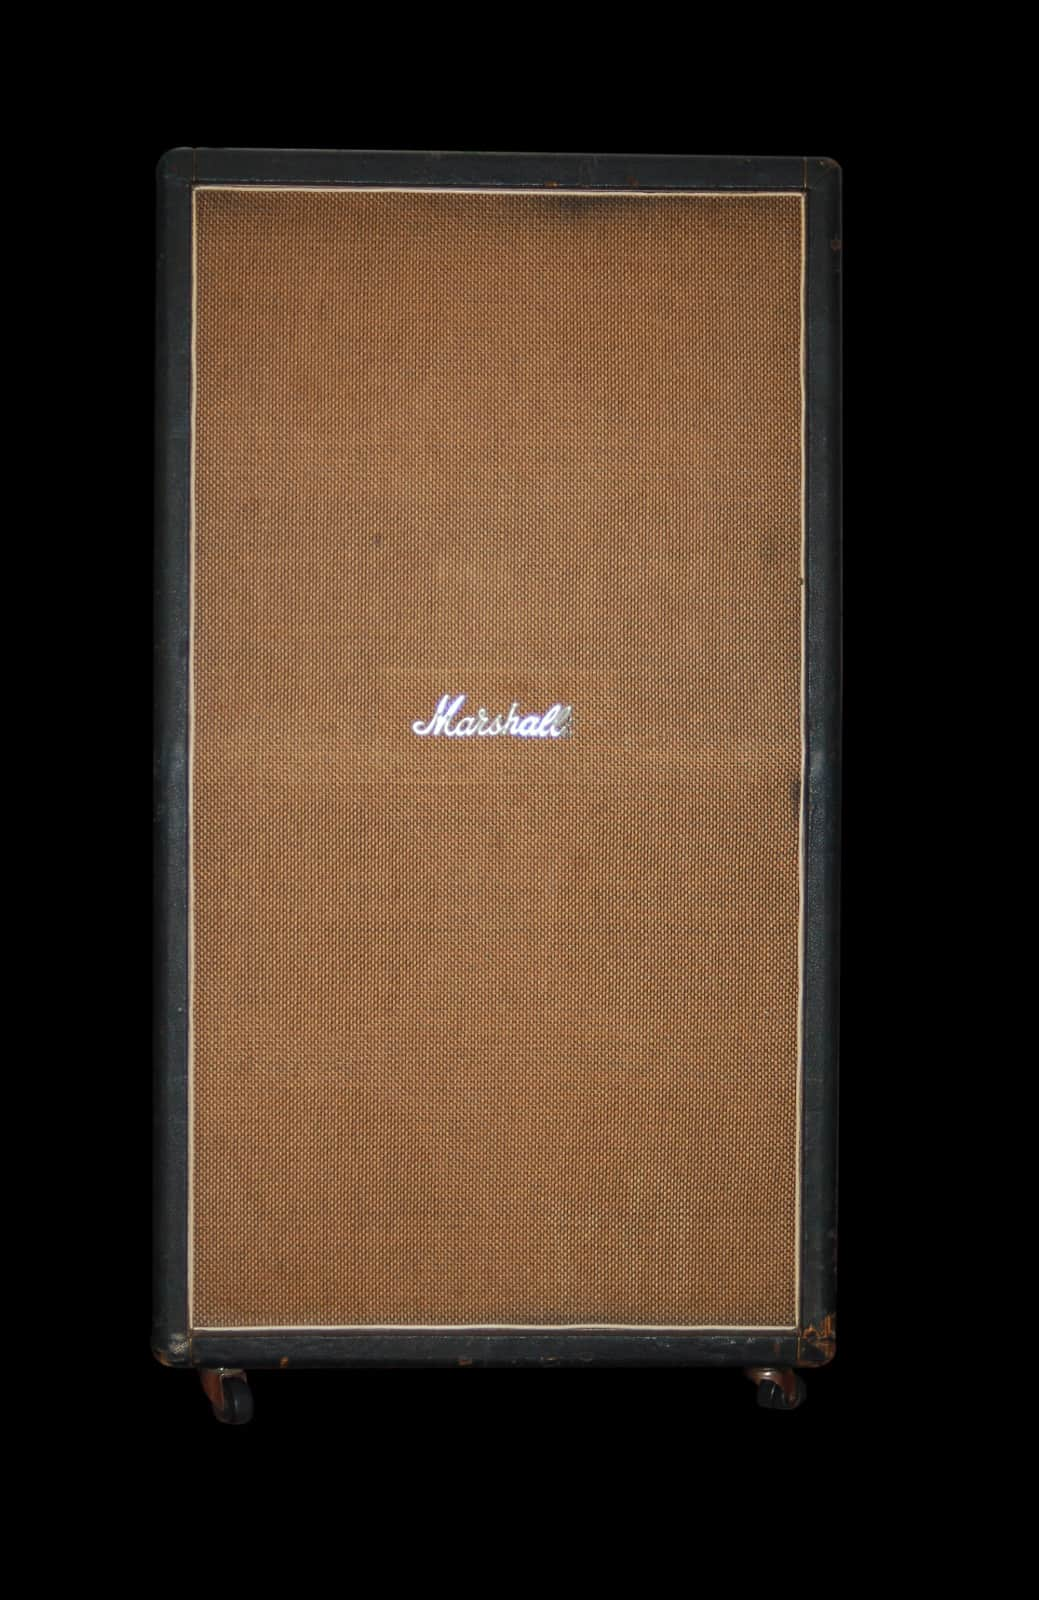 Marshall 1990 8x10 cabinet 1966 original reverb for 8x10 kitchen cabinets